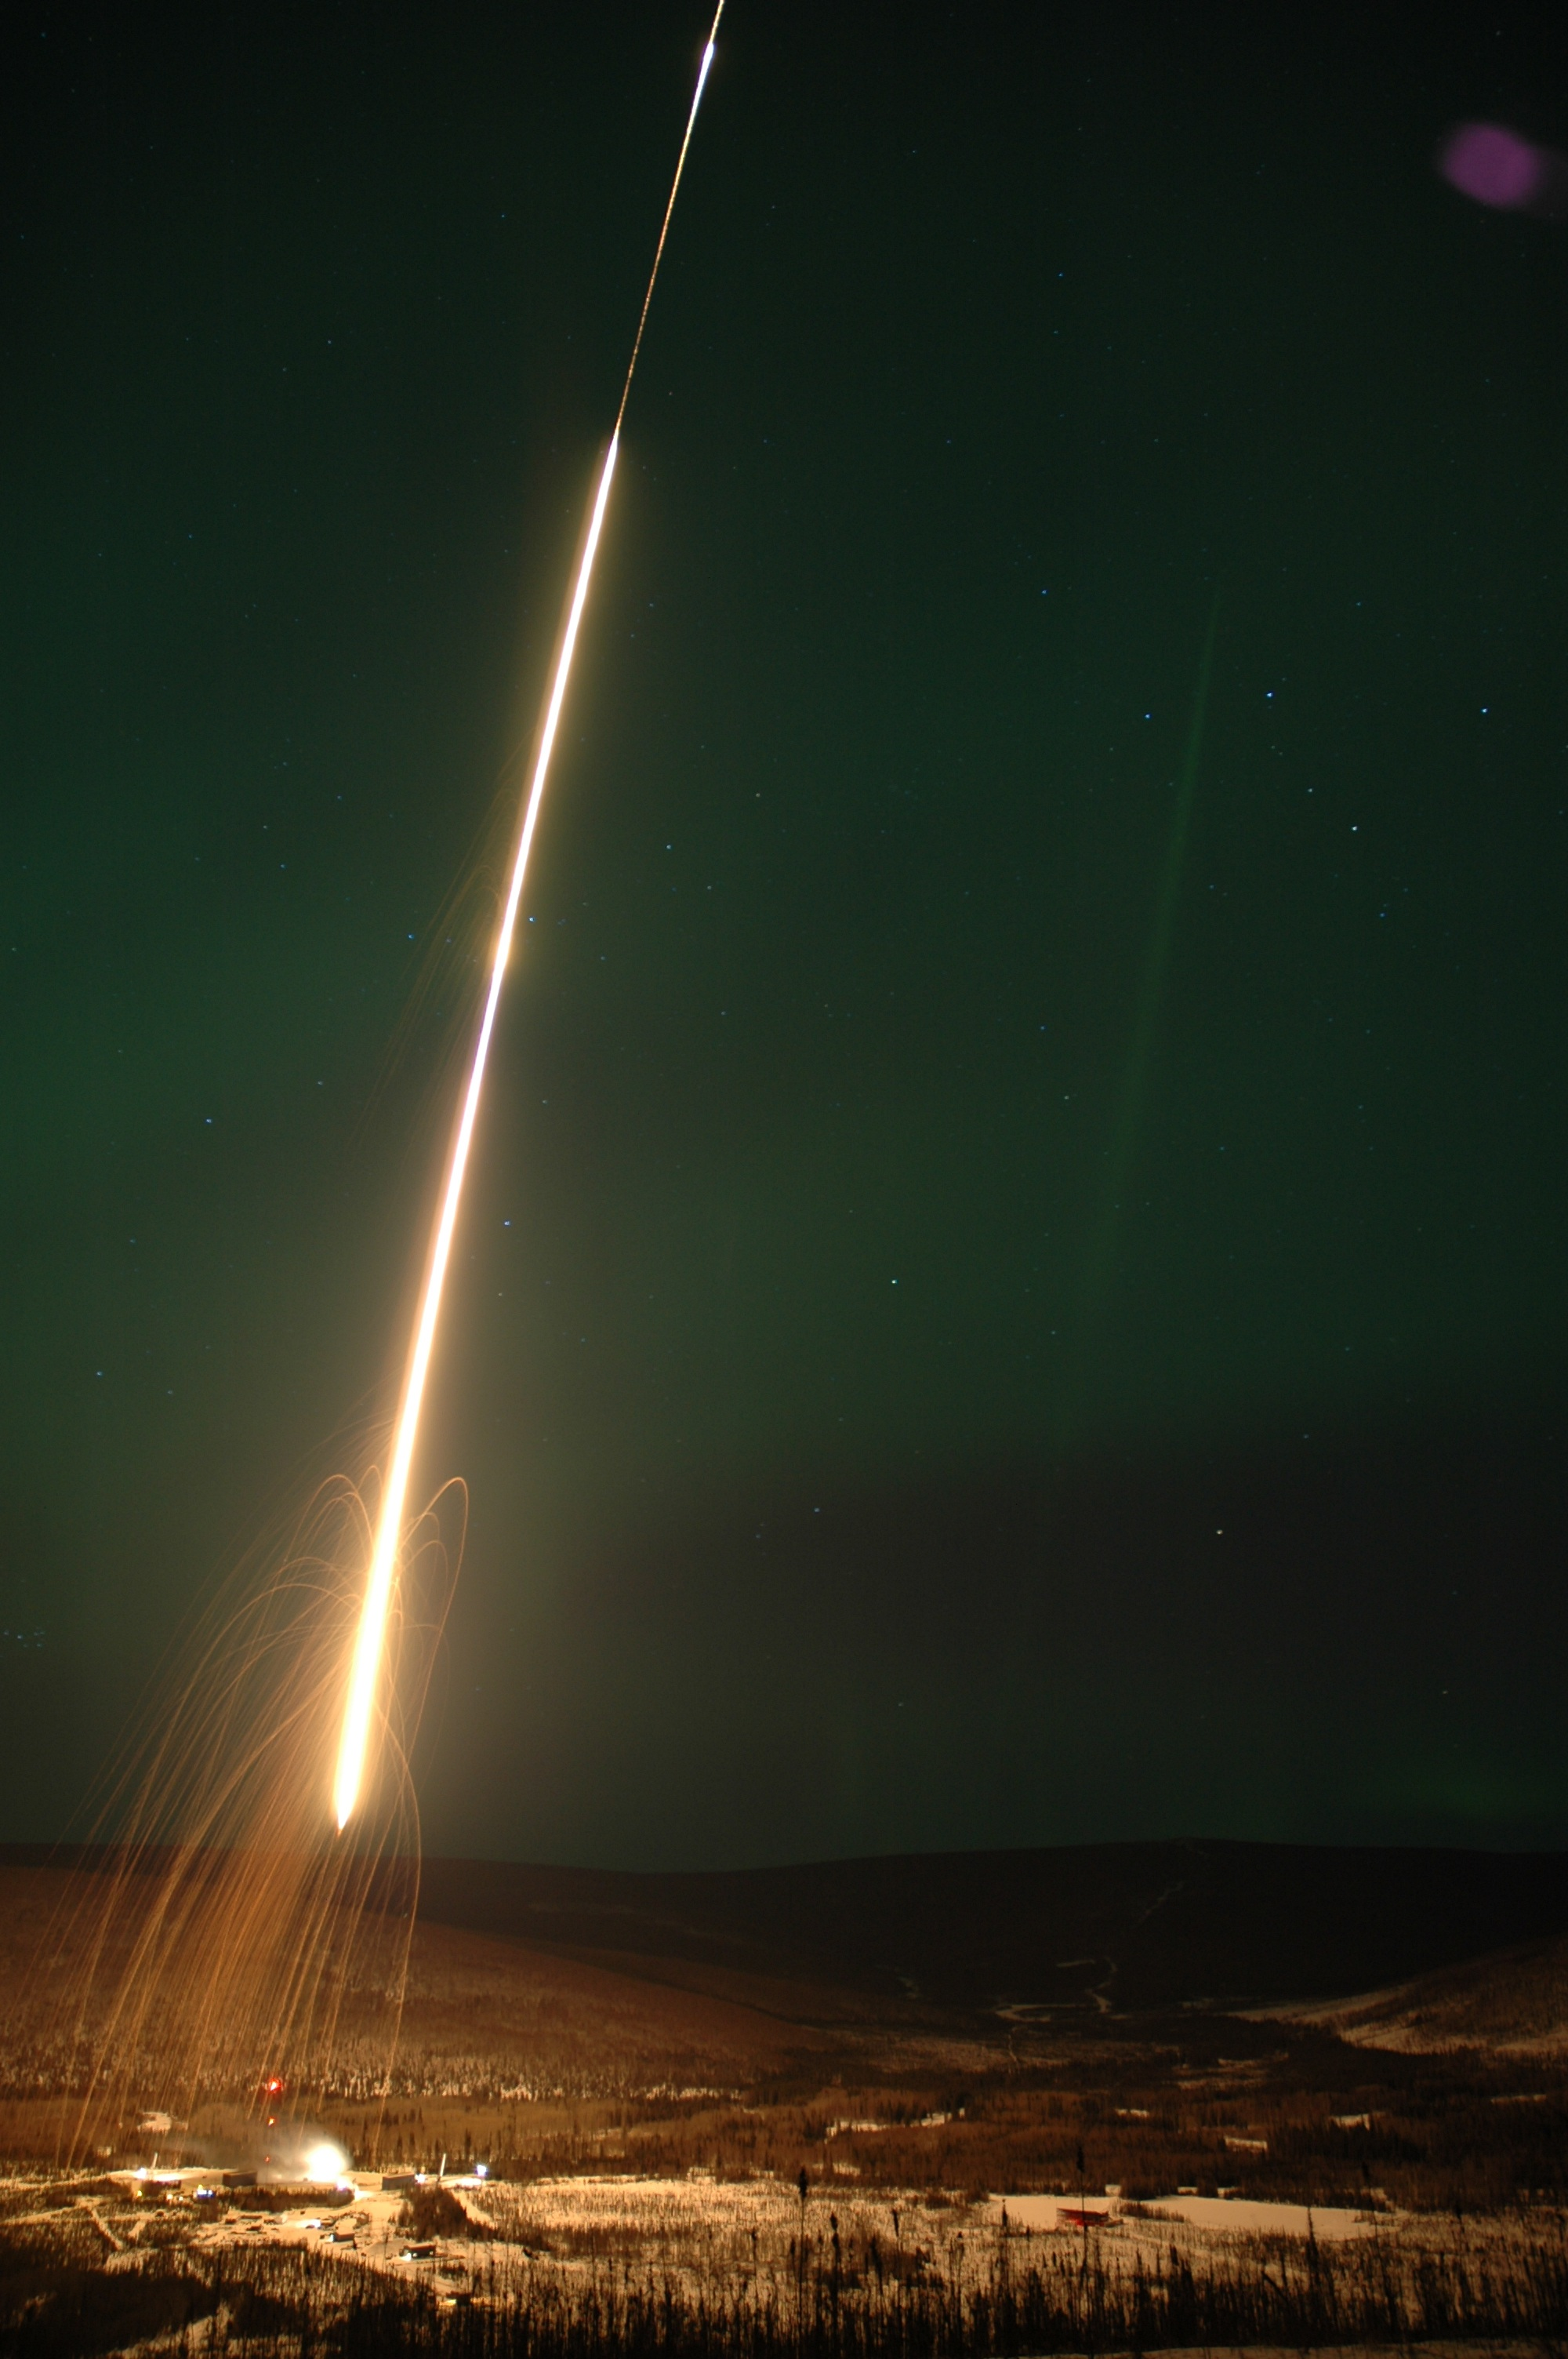 A NASA sounding rocket leaves the launch pad at the Poker Flat Research Range, Alaska, during a 2007 campaign. Image Credit: NASA